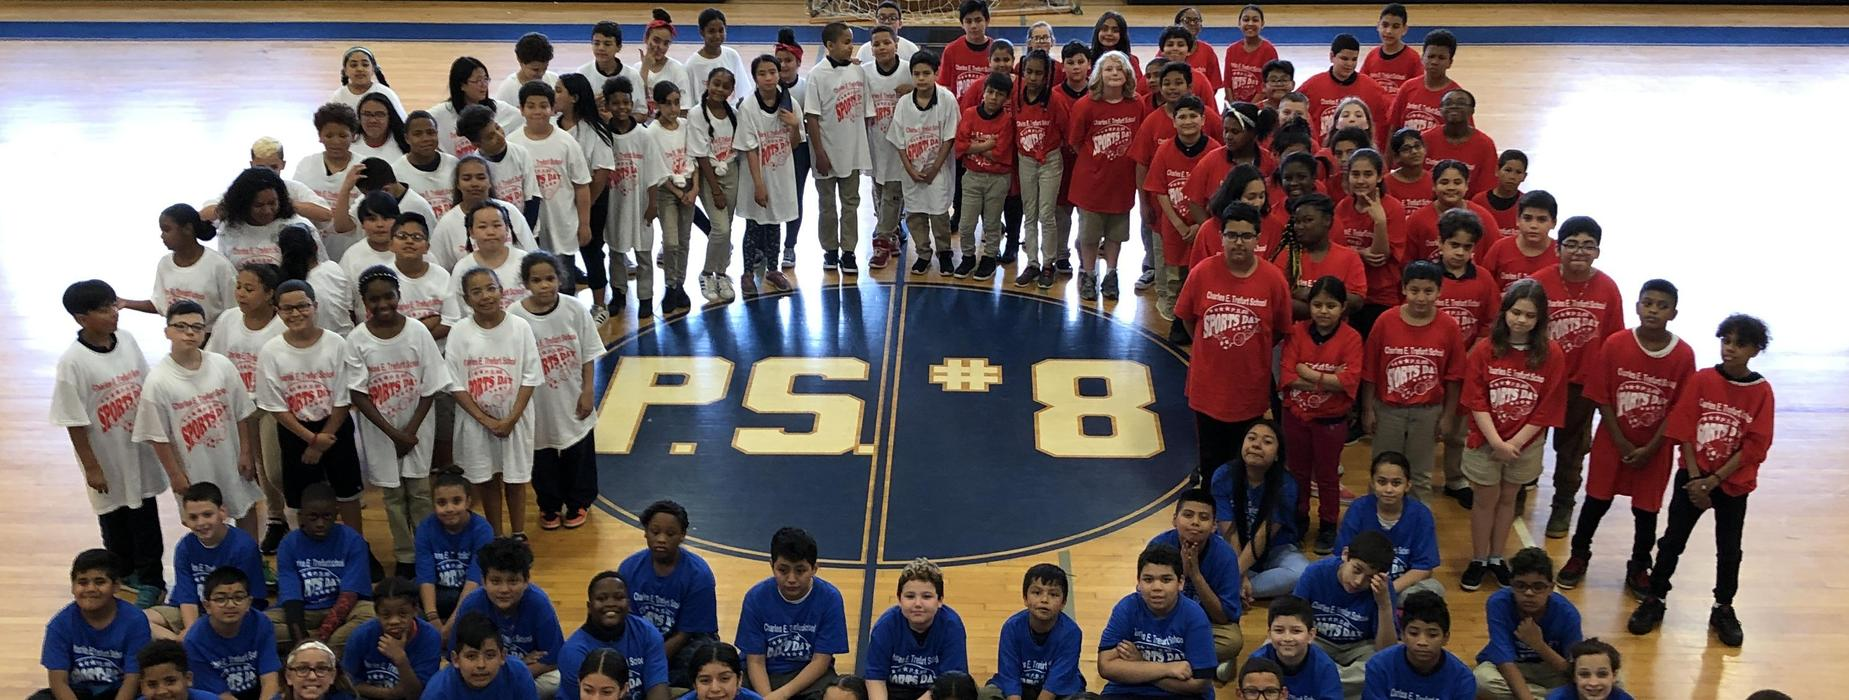 A large group of PS8 students stand around a PS8 sign in the school gymnasium wearing